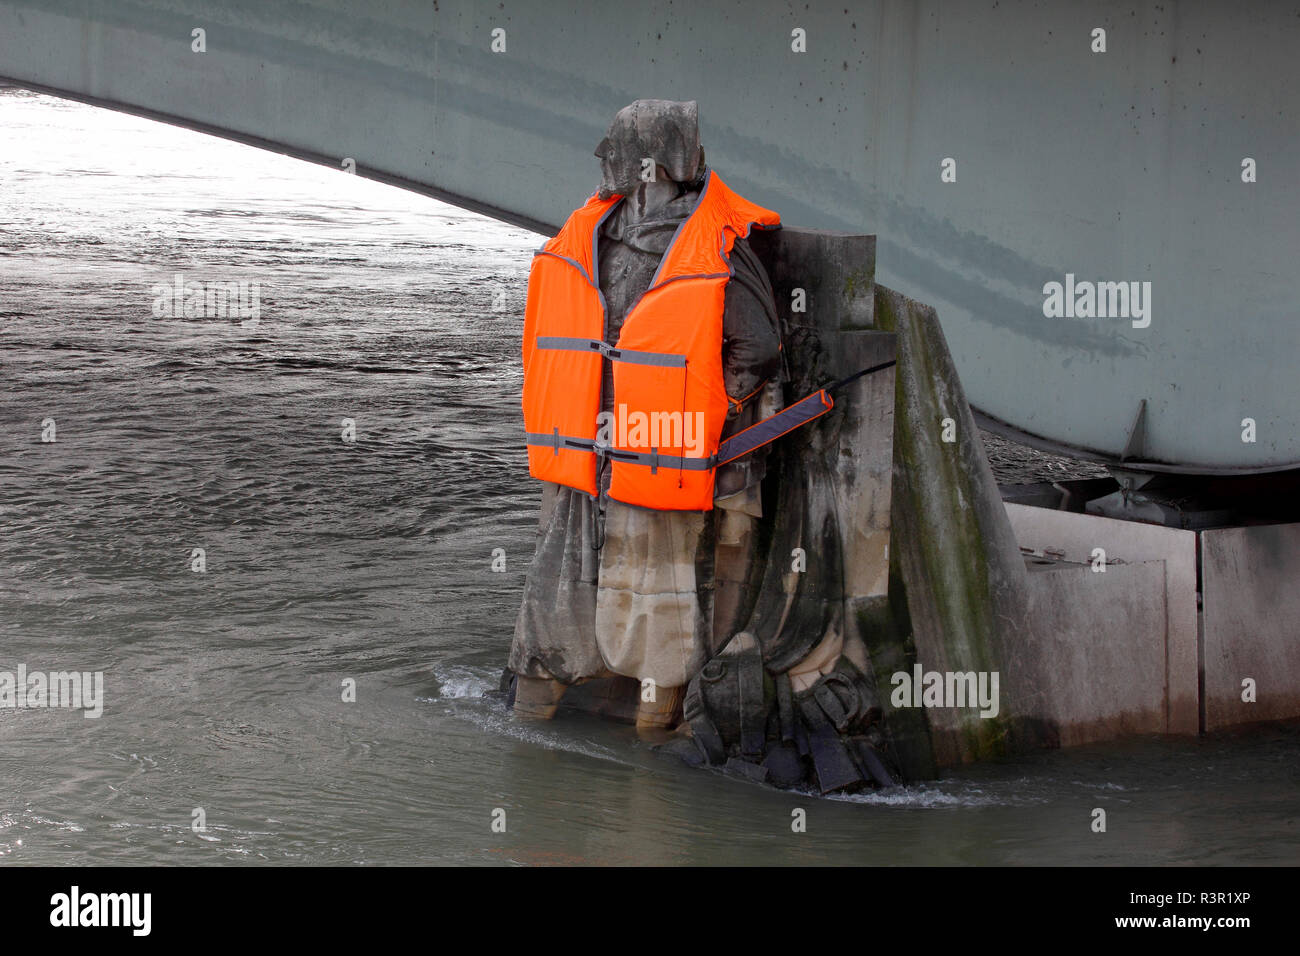 Photographer Yann Arthus-Bertrand dressed the zouave of the Alma bridge with a lifejacket to wake up the consciousness of global warming during the flood of the Seine in Paris in February 2018, France - Stock Image